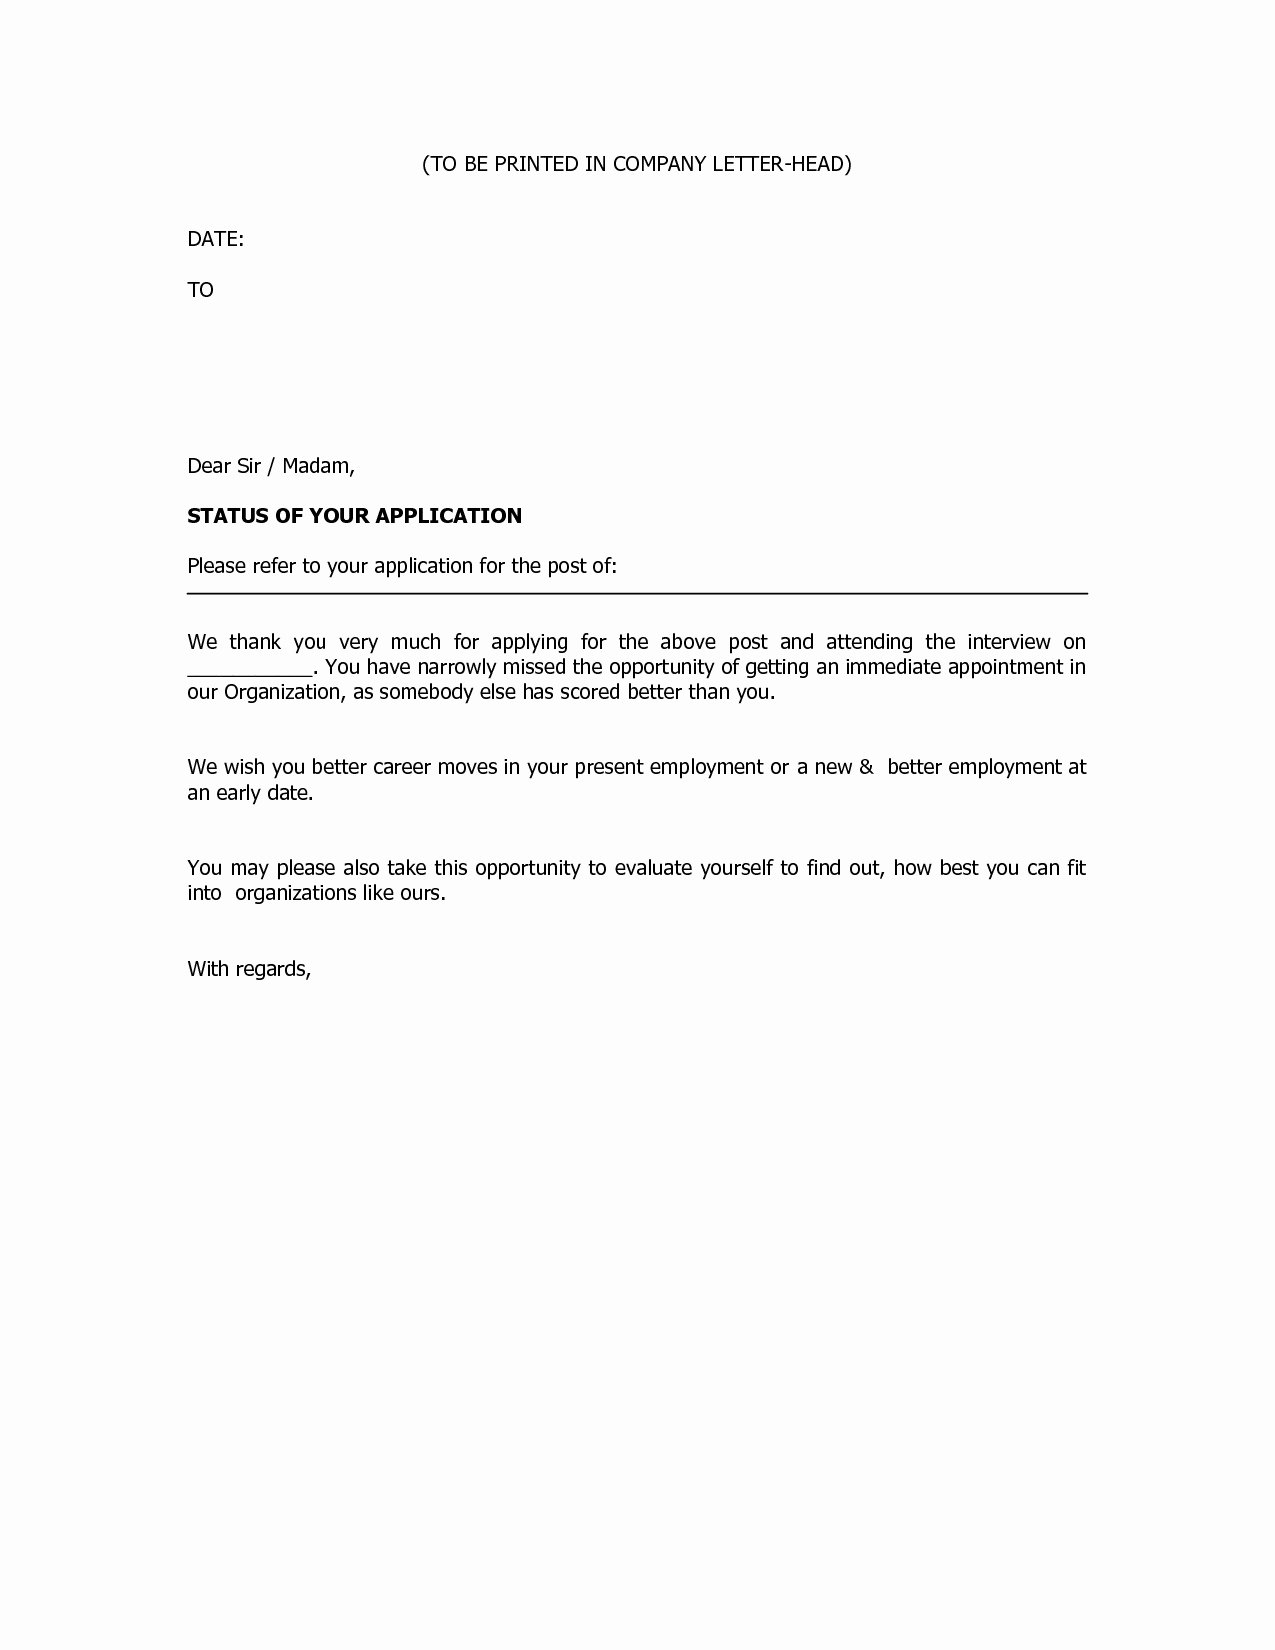 Job Rejection Email Template Best Of Rejection Letter Template after Interview Collection